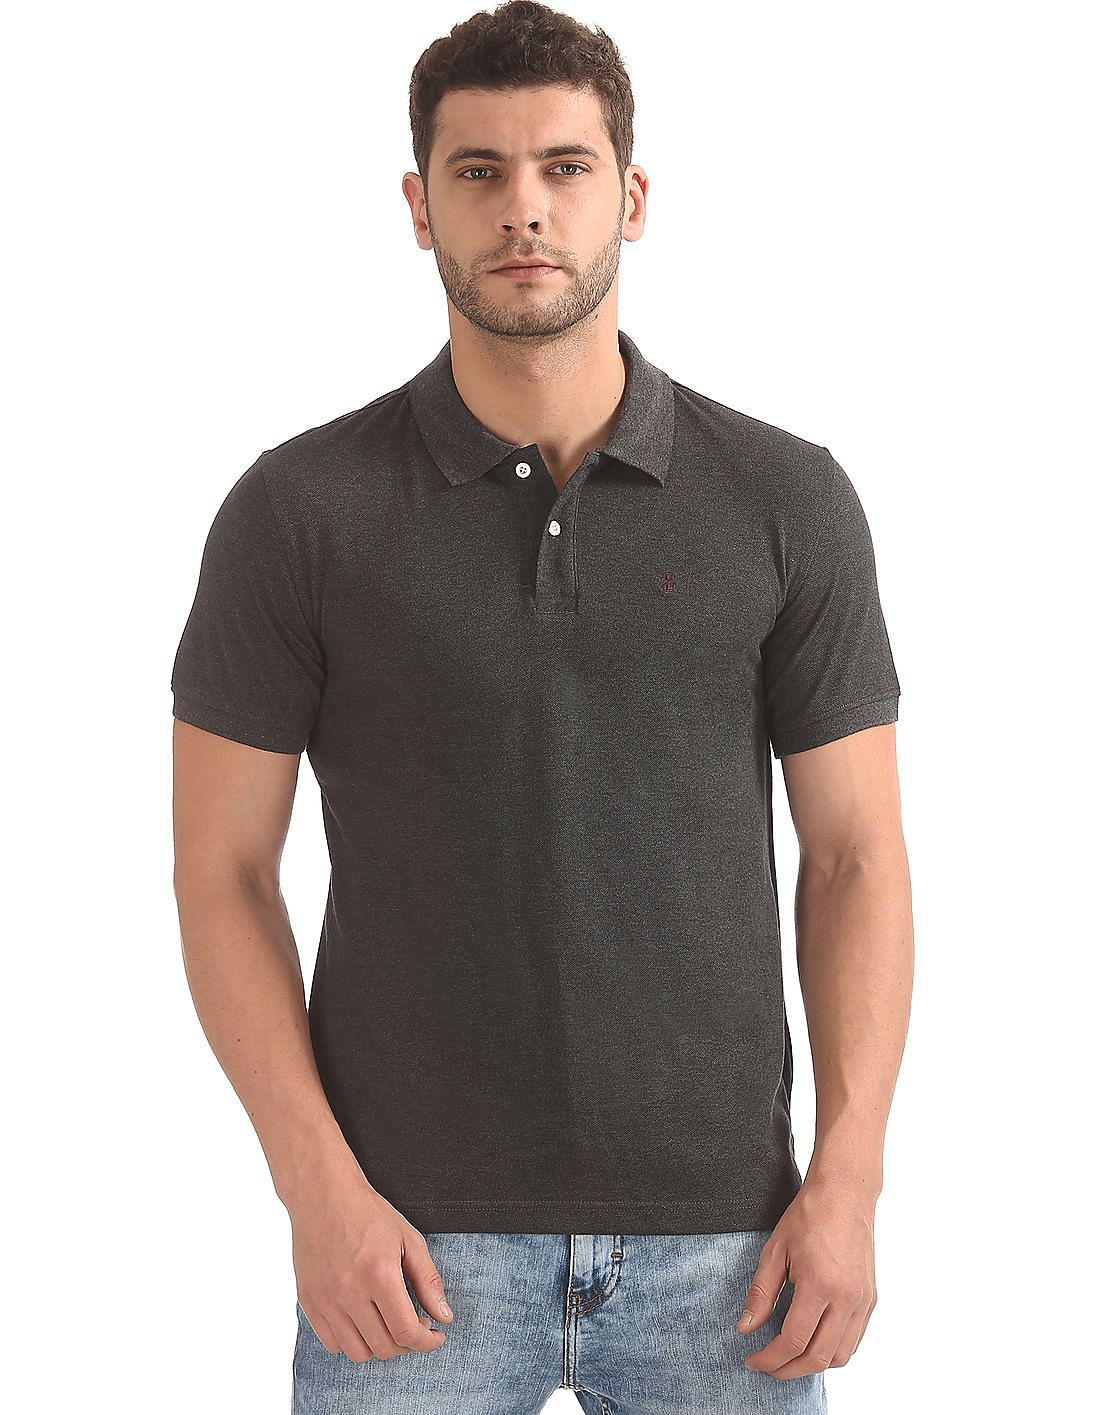 ce2ba23d5 Buy Men Solid Regular Fit Polo Shirt online at NNNOW.com